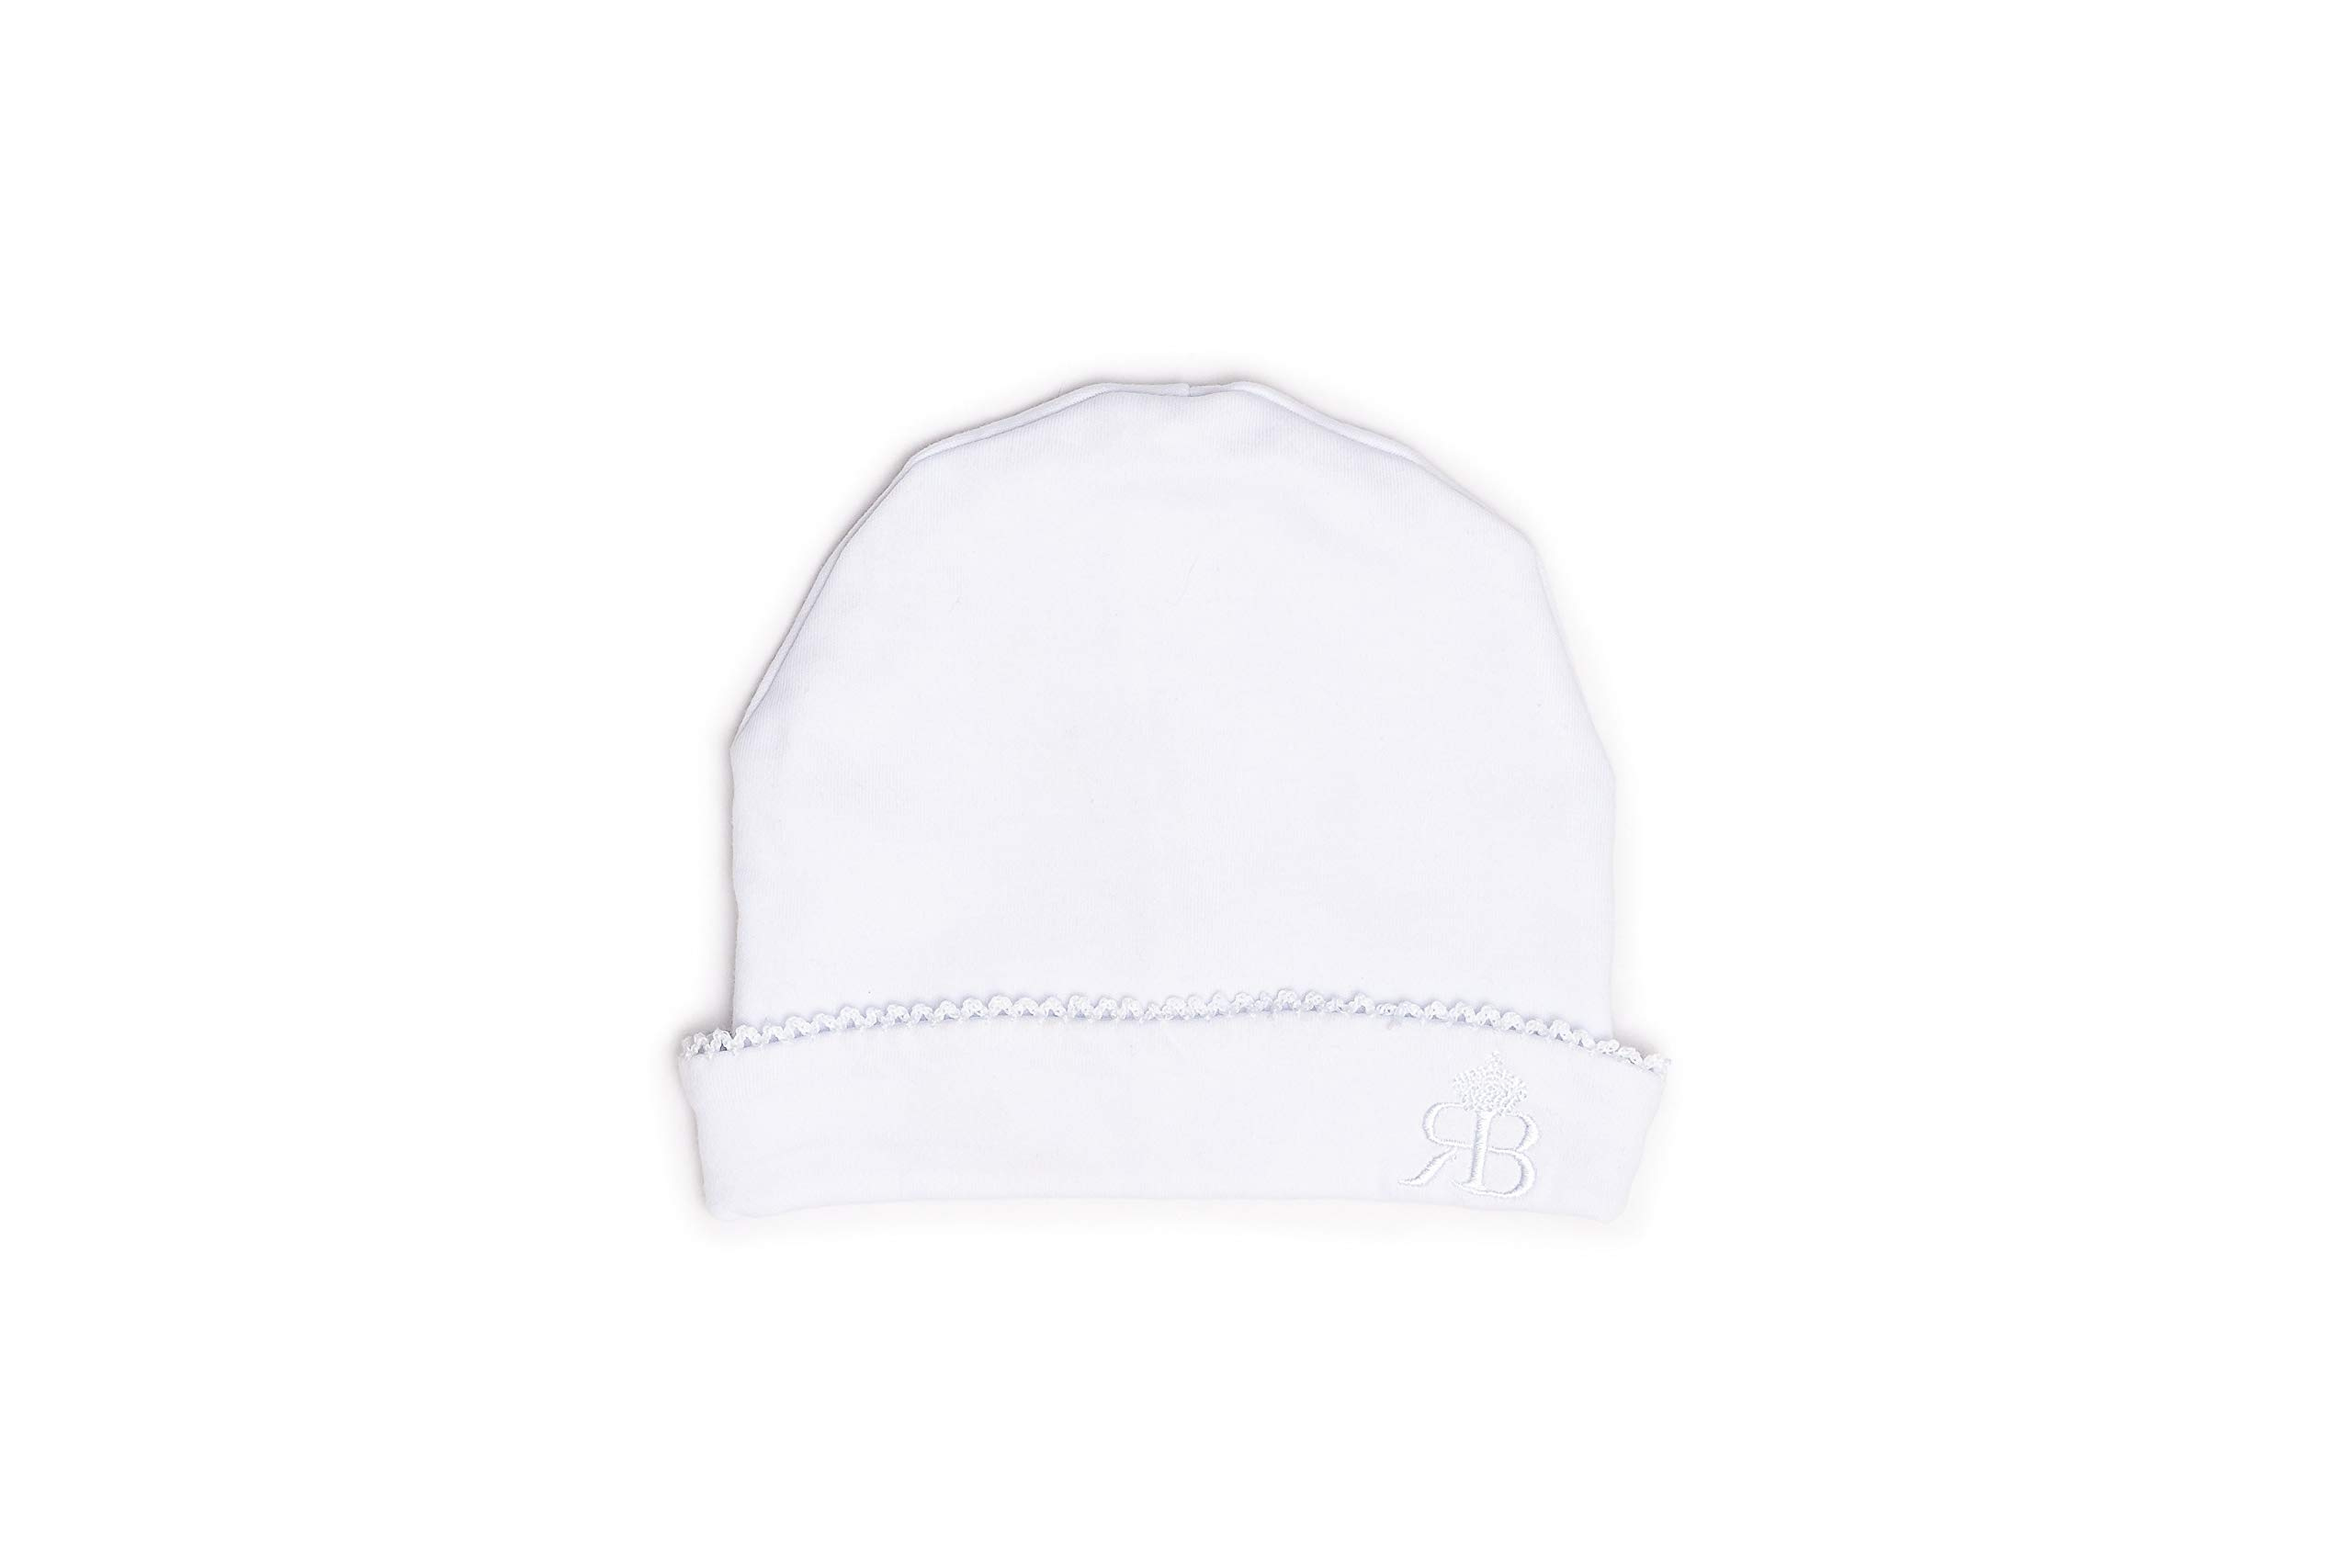 RB Royal Baby Organic Cotton Beanie Hat Super Soft Infant Cap Chic Pattern (Rb White)